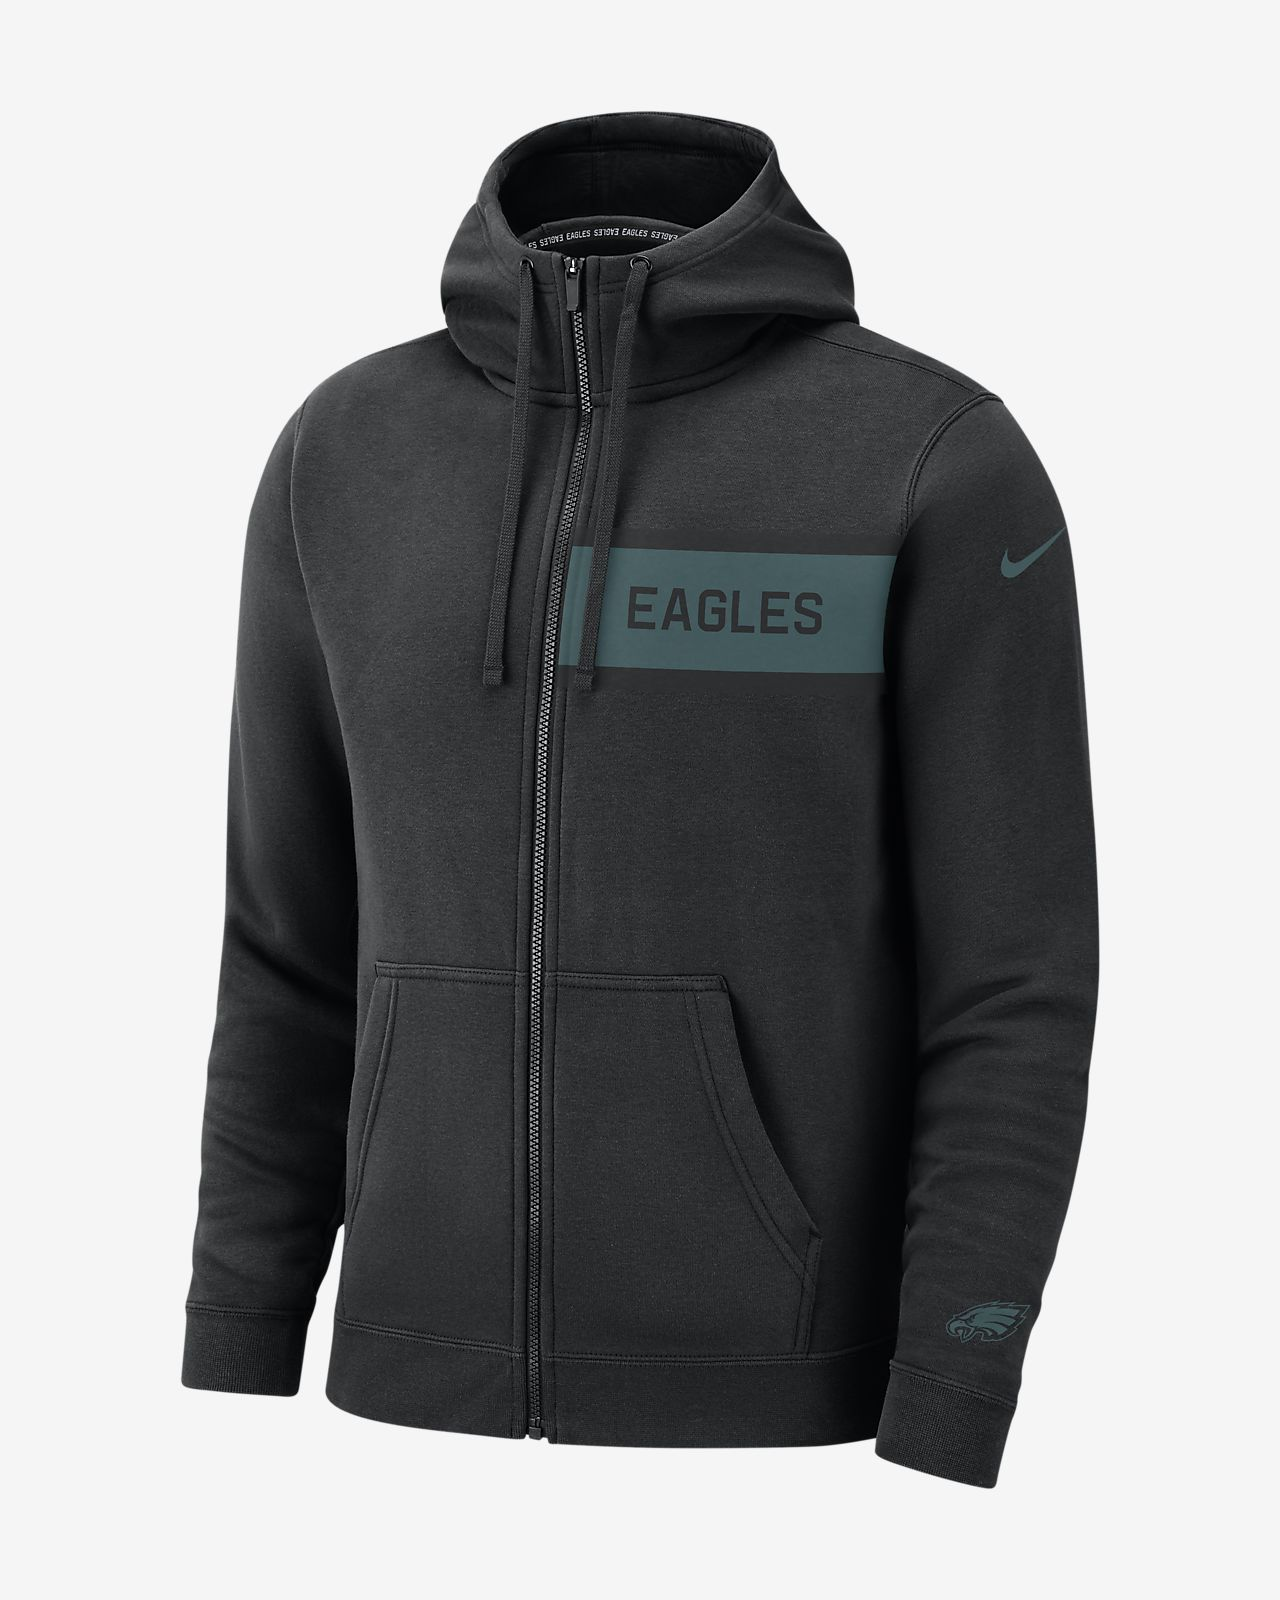 f1c2737b24 Nike (NFL Eagles) Men's Club Fleece Full-Zip Hoodie. Nike.com CH